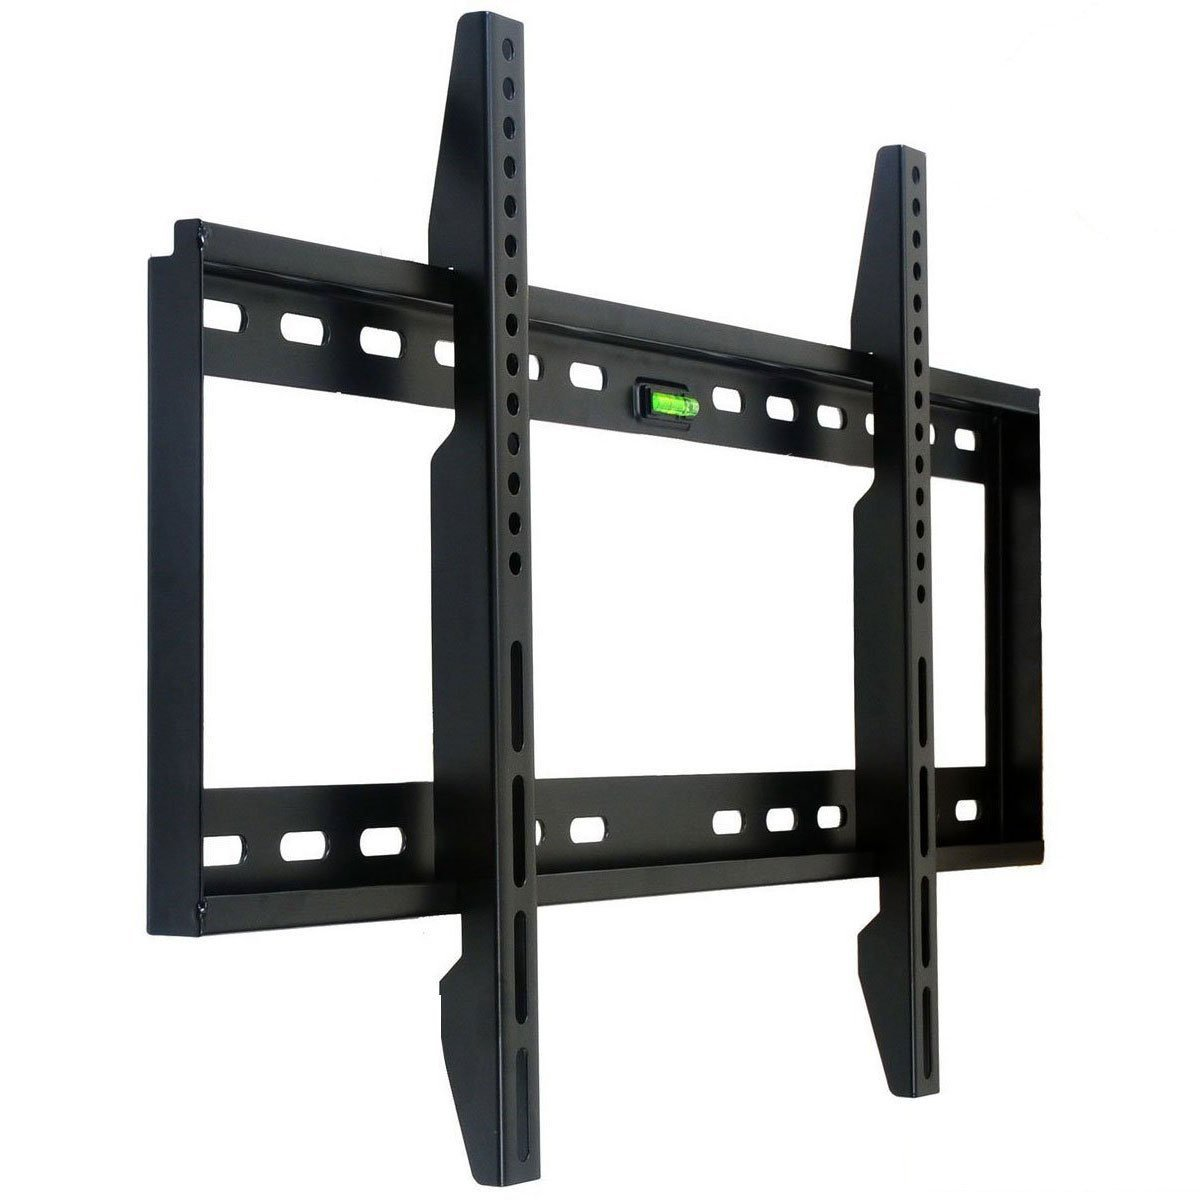 TV Wall Mount for Sharp AQUOS lc-37d64u LC37D62U Vizio E551i-A2 M550VSE M3D550KDE E601i-A3 LG 47LE5500 47LX6500 47LH85... by